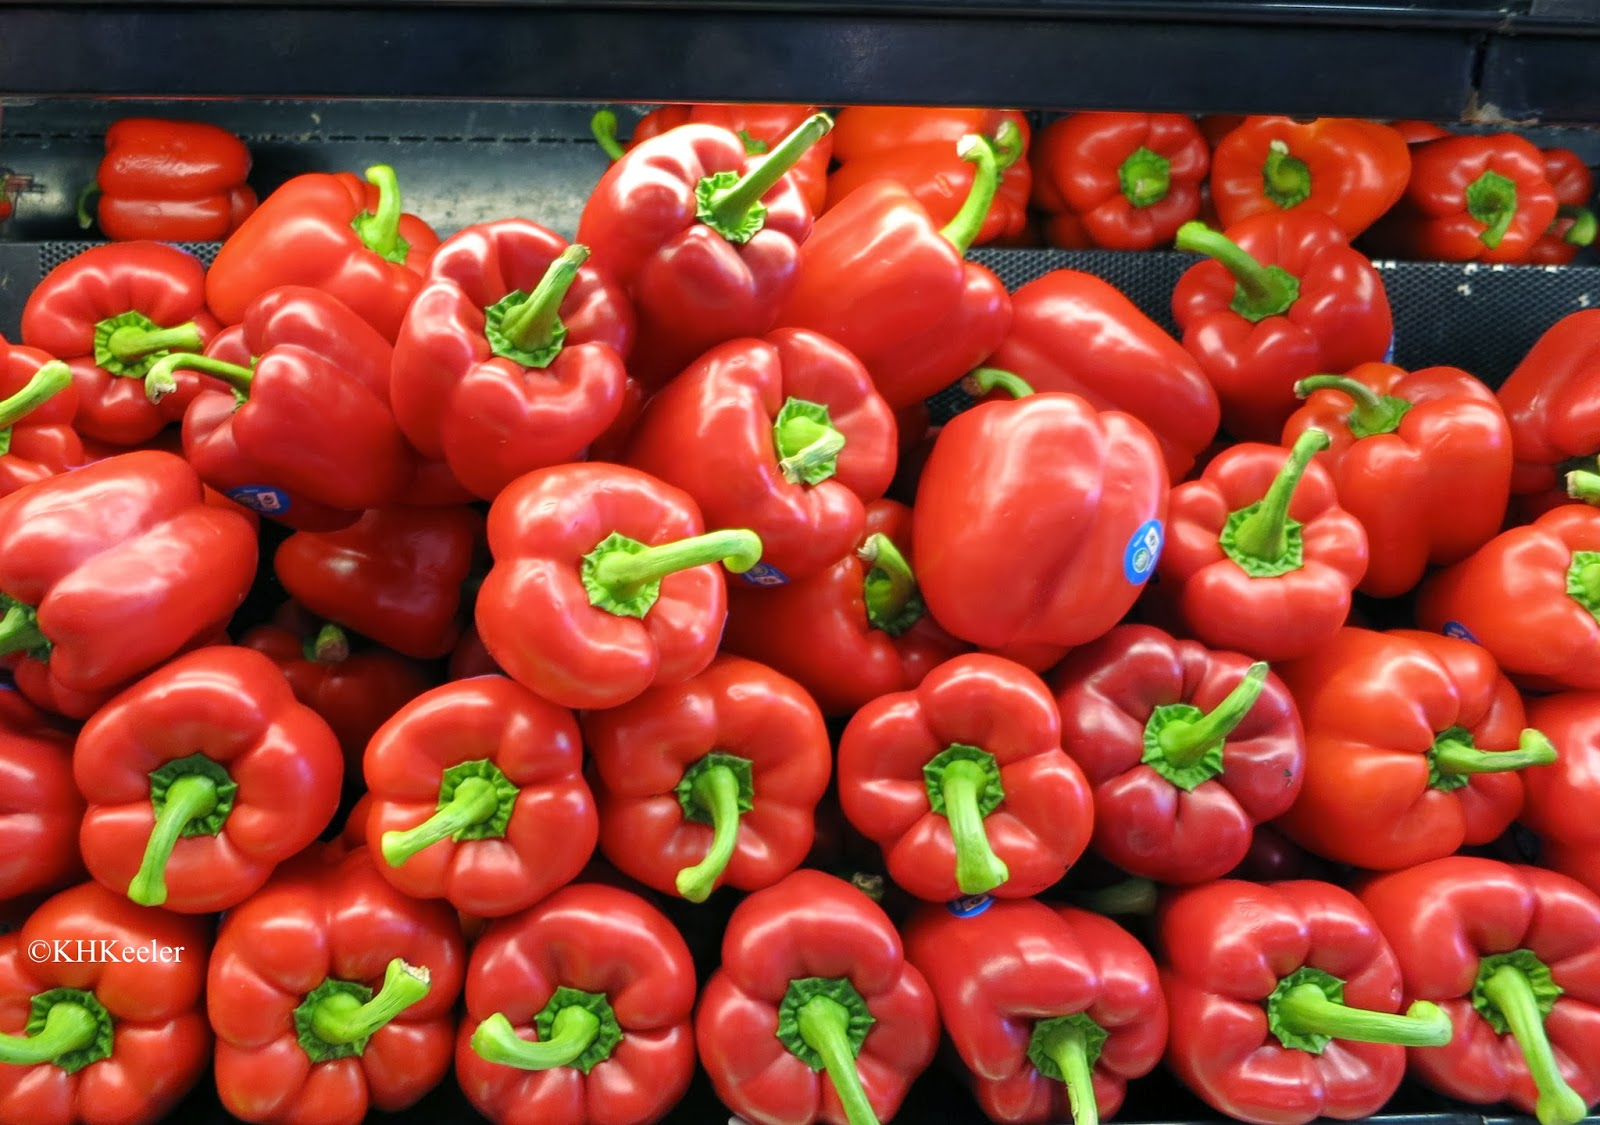 red peppers in a grocery store